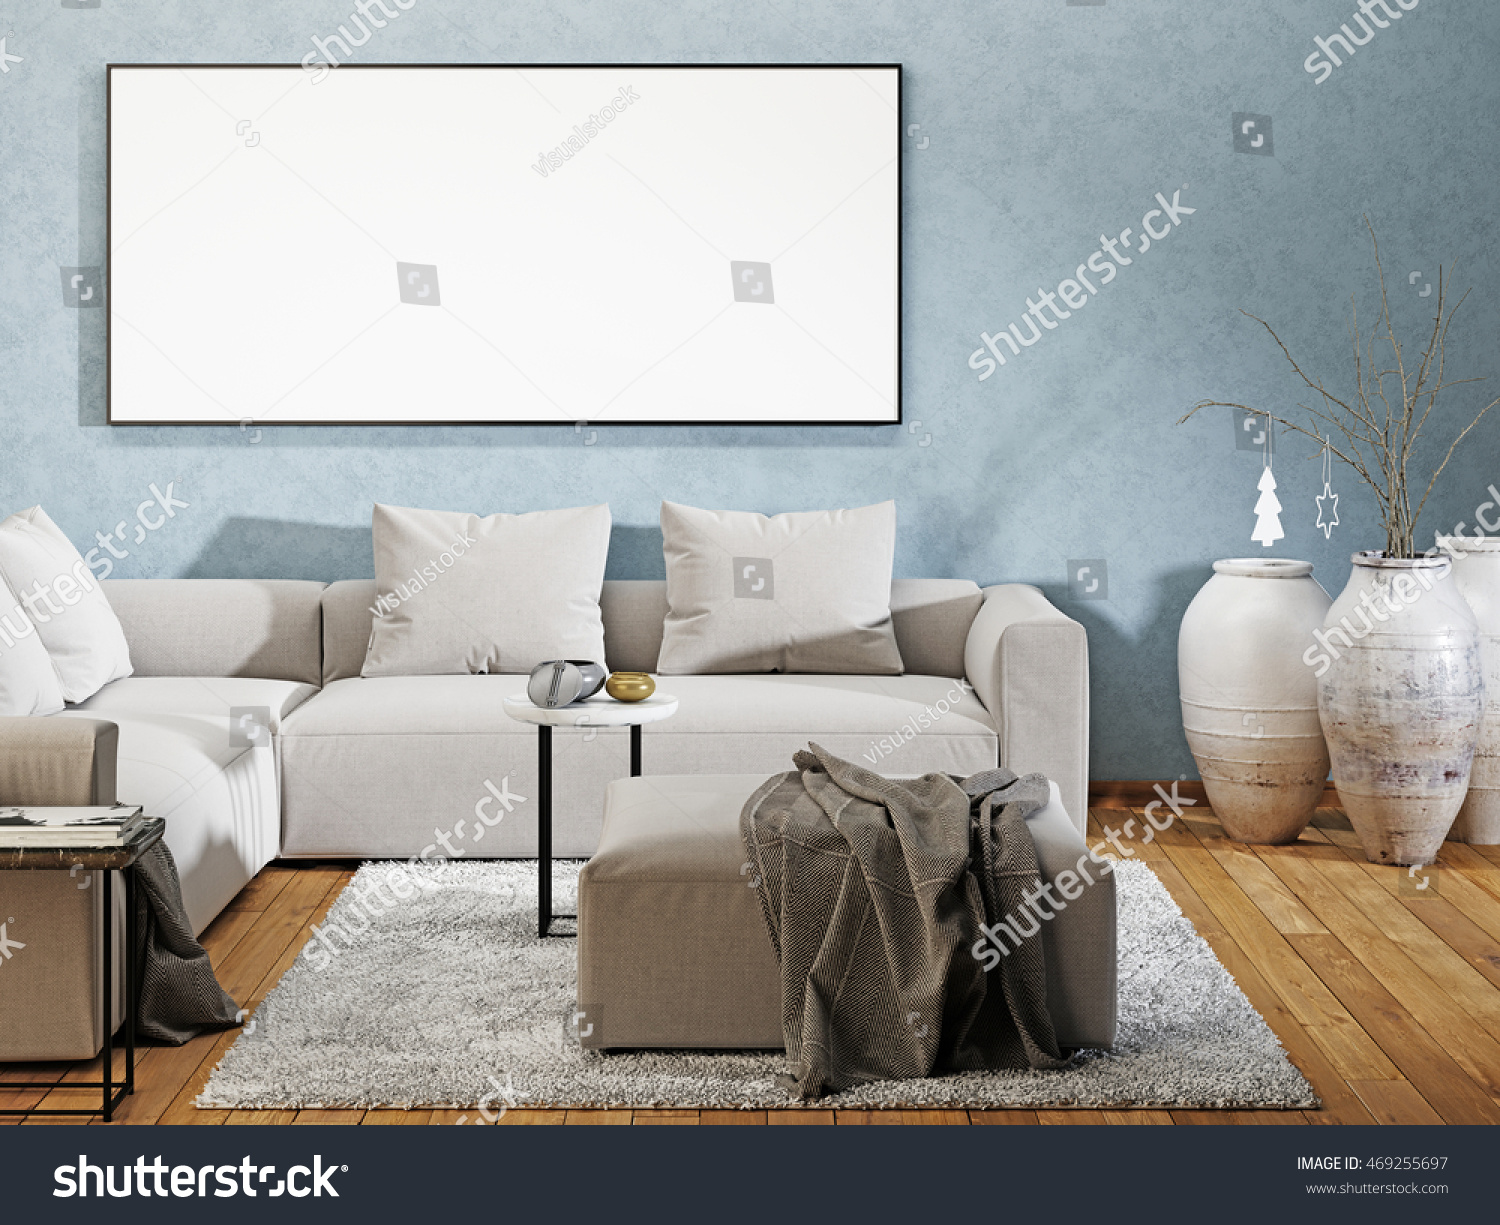 Mockup poster blank modern interior sofa stock illustration